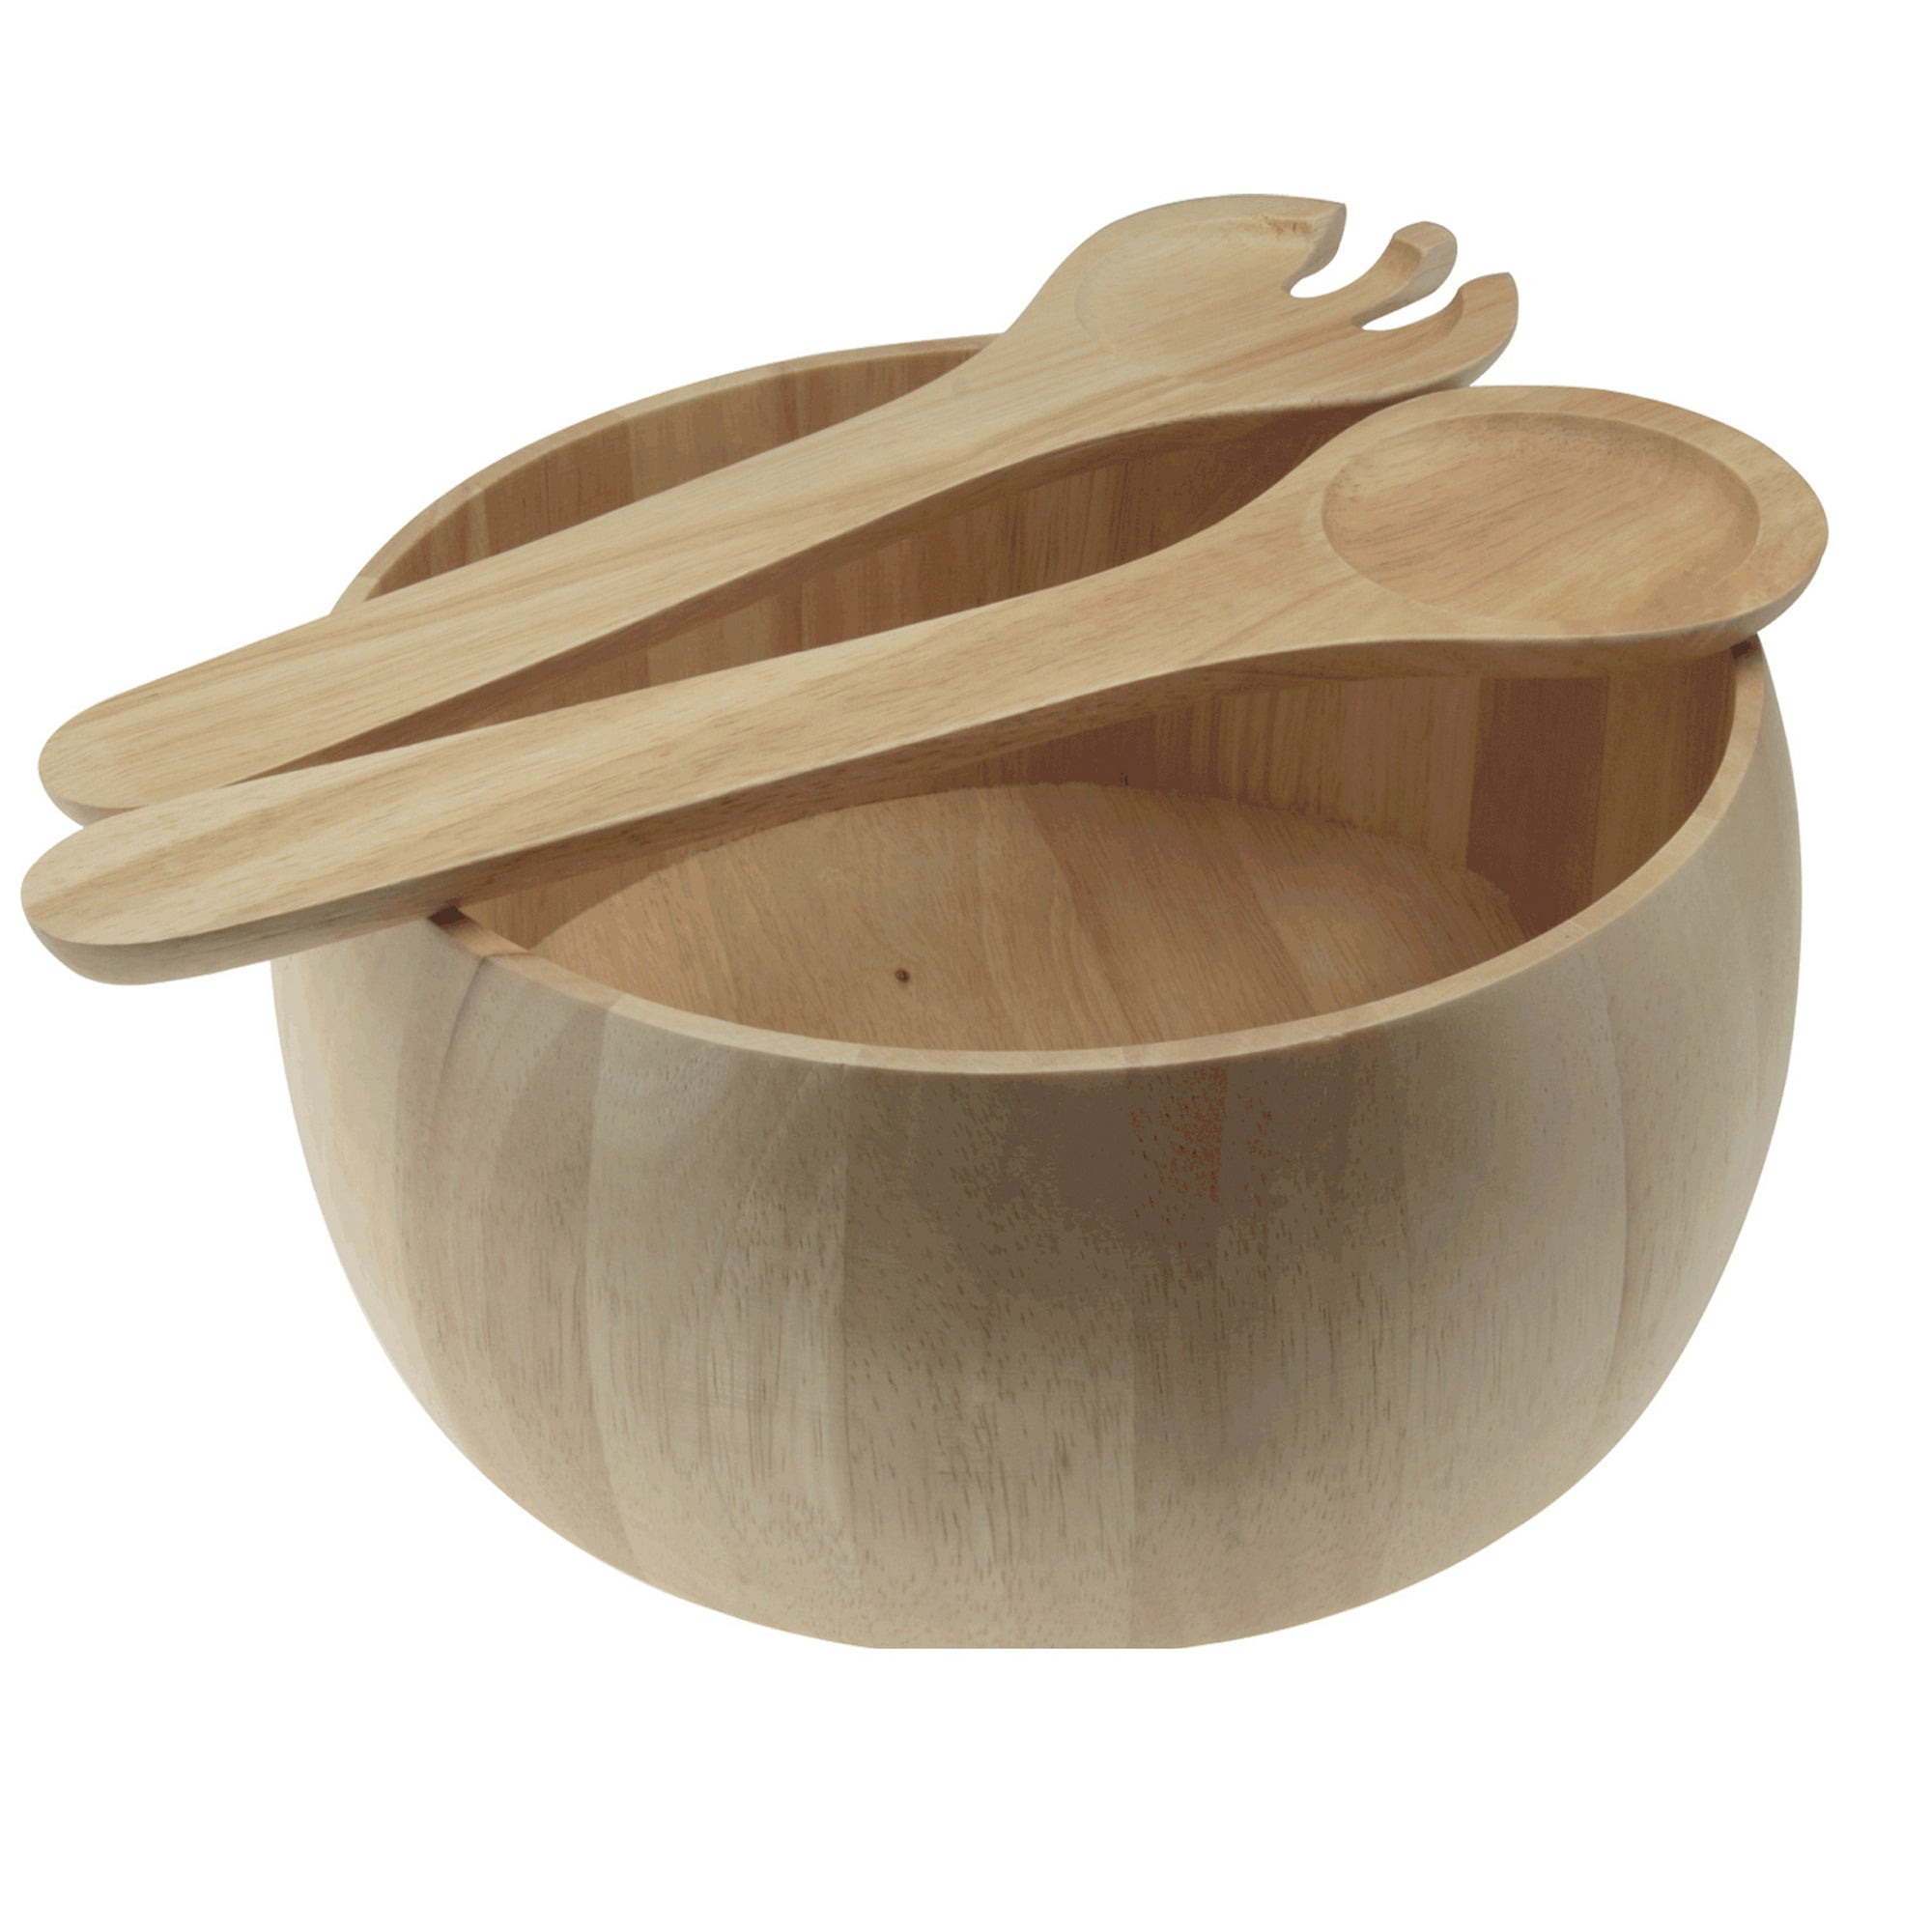 Wooden Salad Bowl and Servers